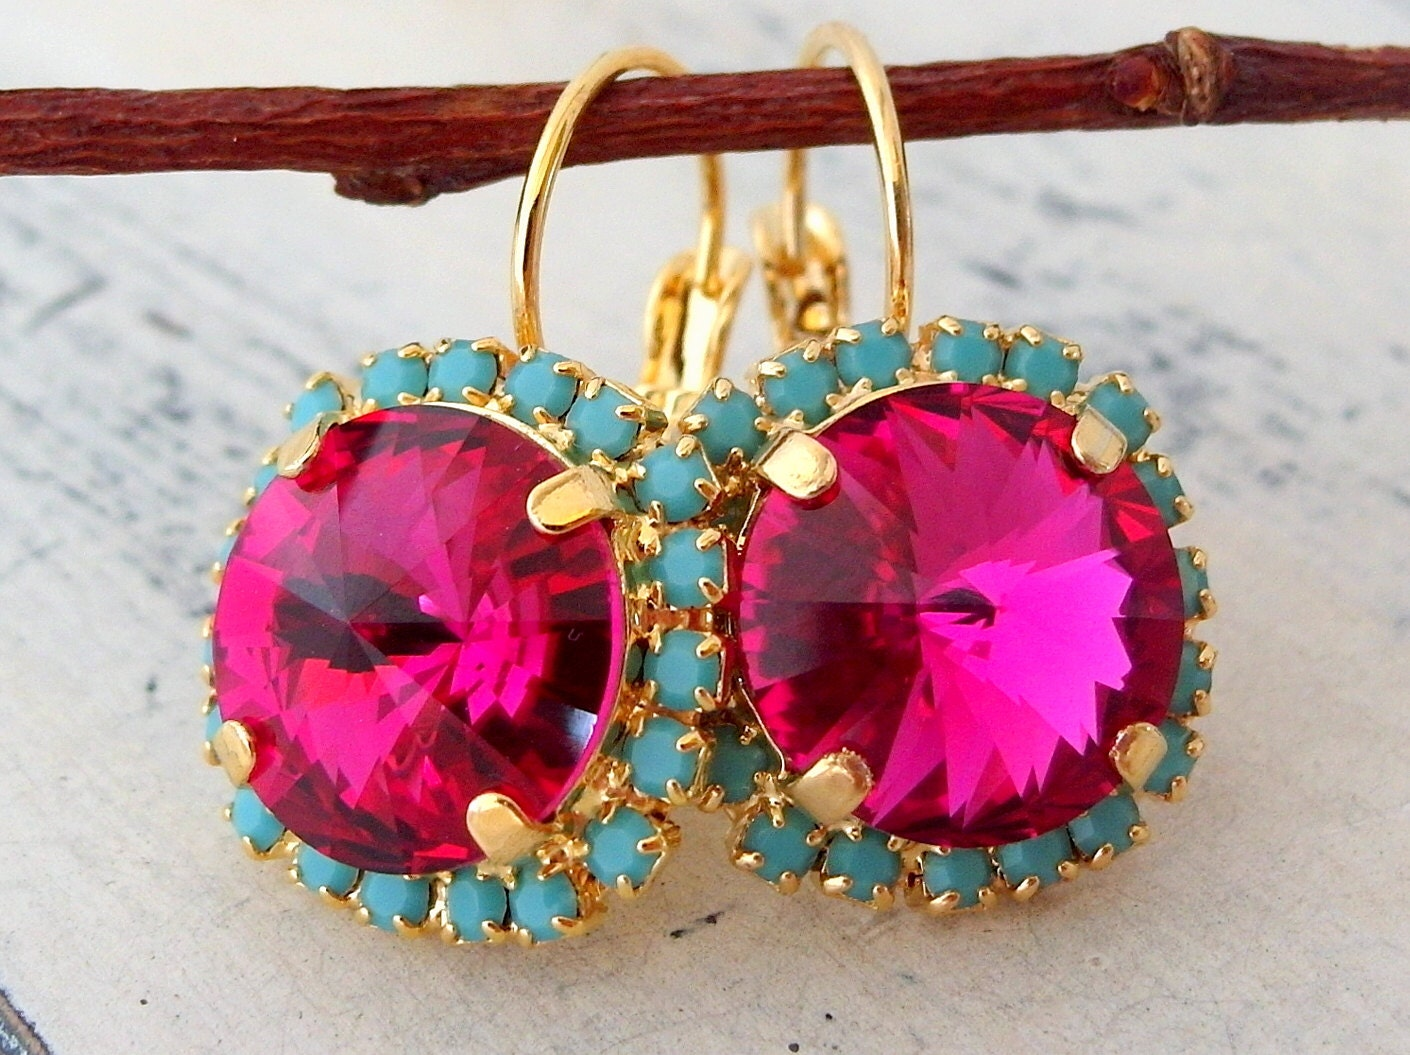 Turquoise Fuchsia Wedding: Hot Pink Fuchsia And Turquoise Crystal Drop Earrings Gold